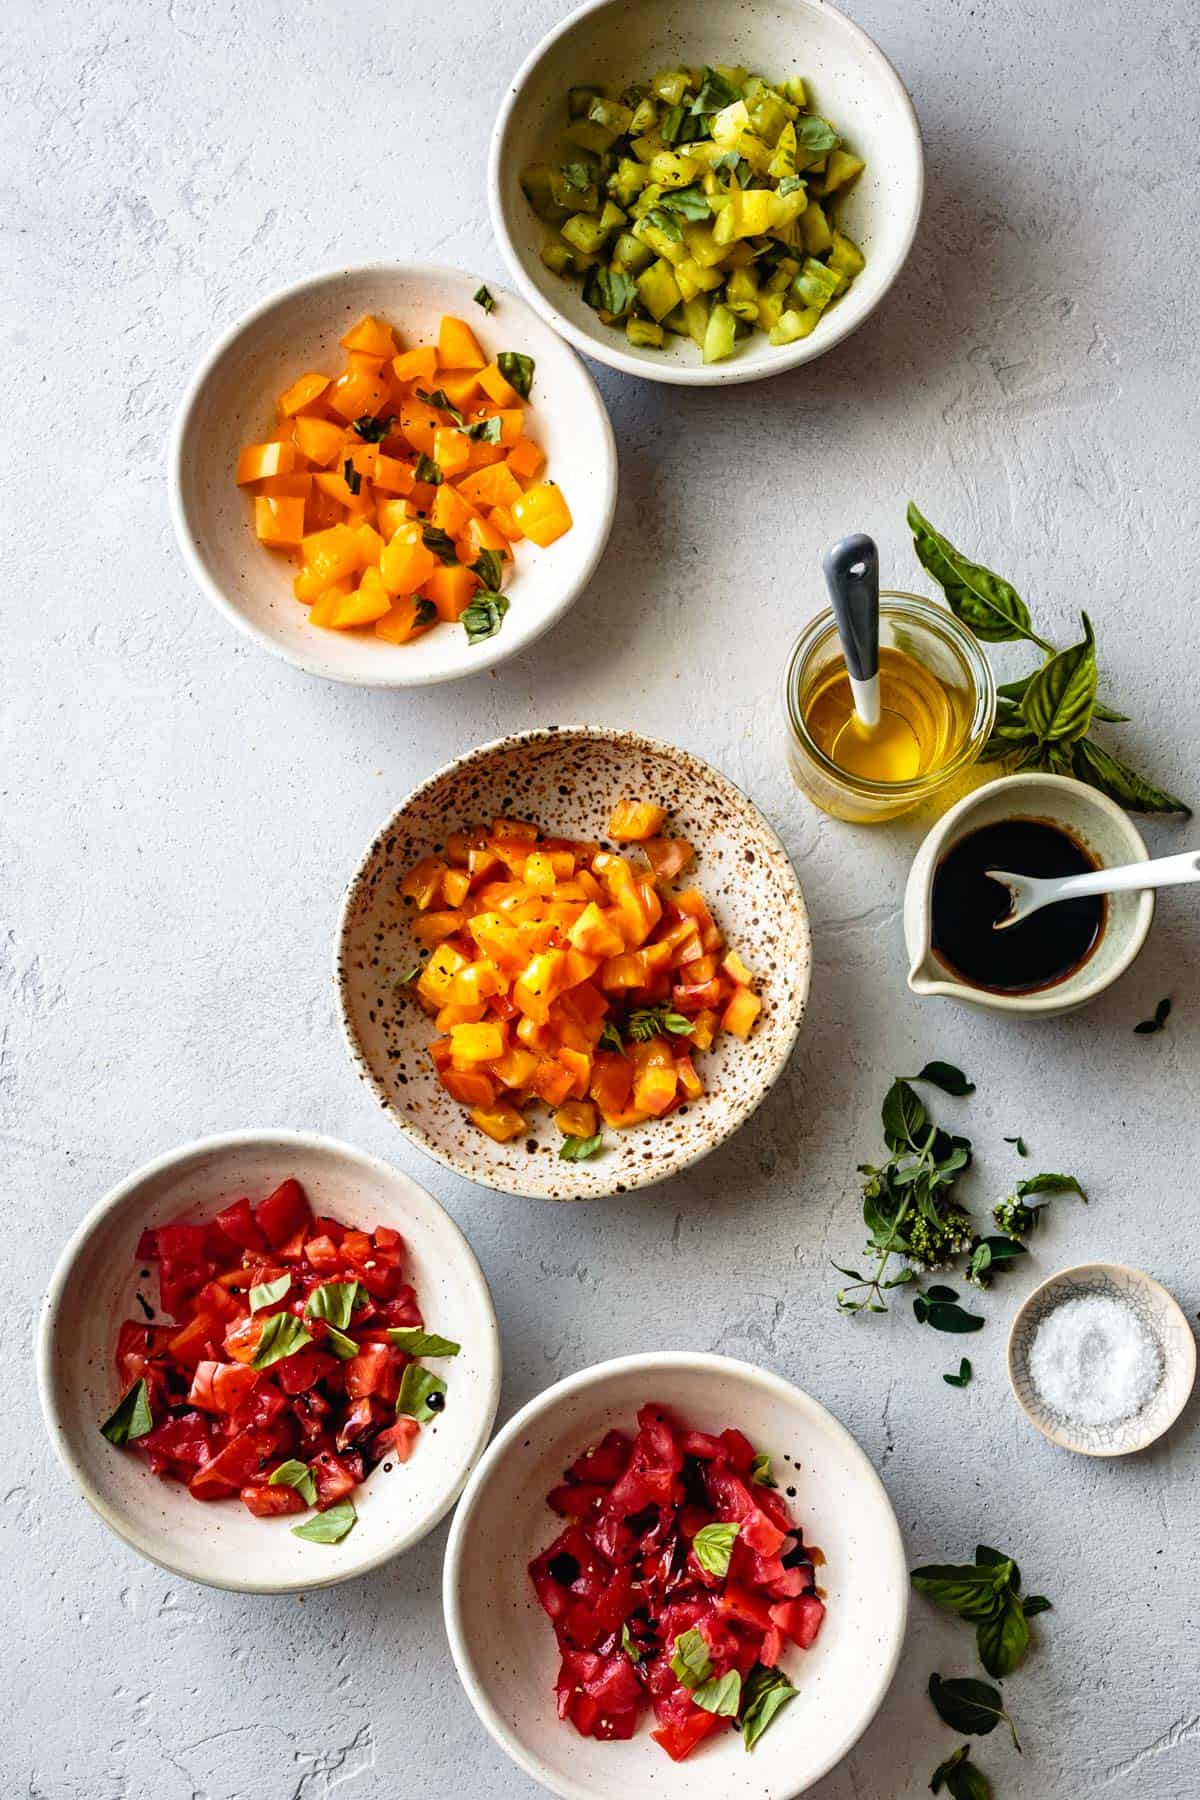 Rainbow bruschetta tomatoes in bowls